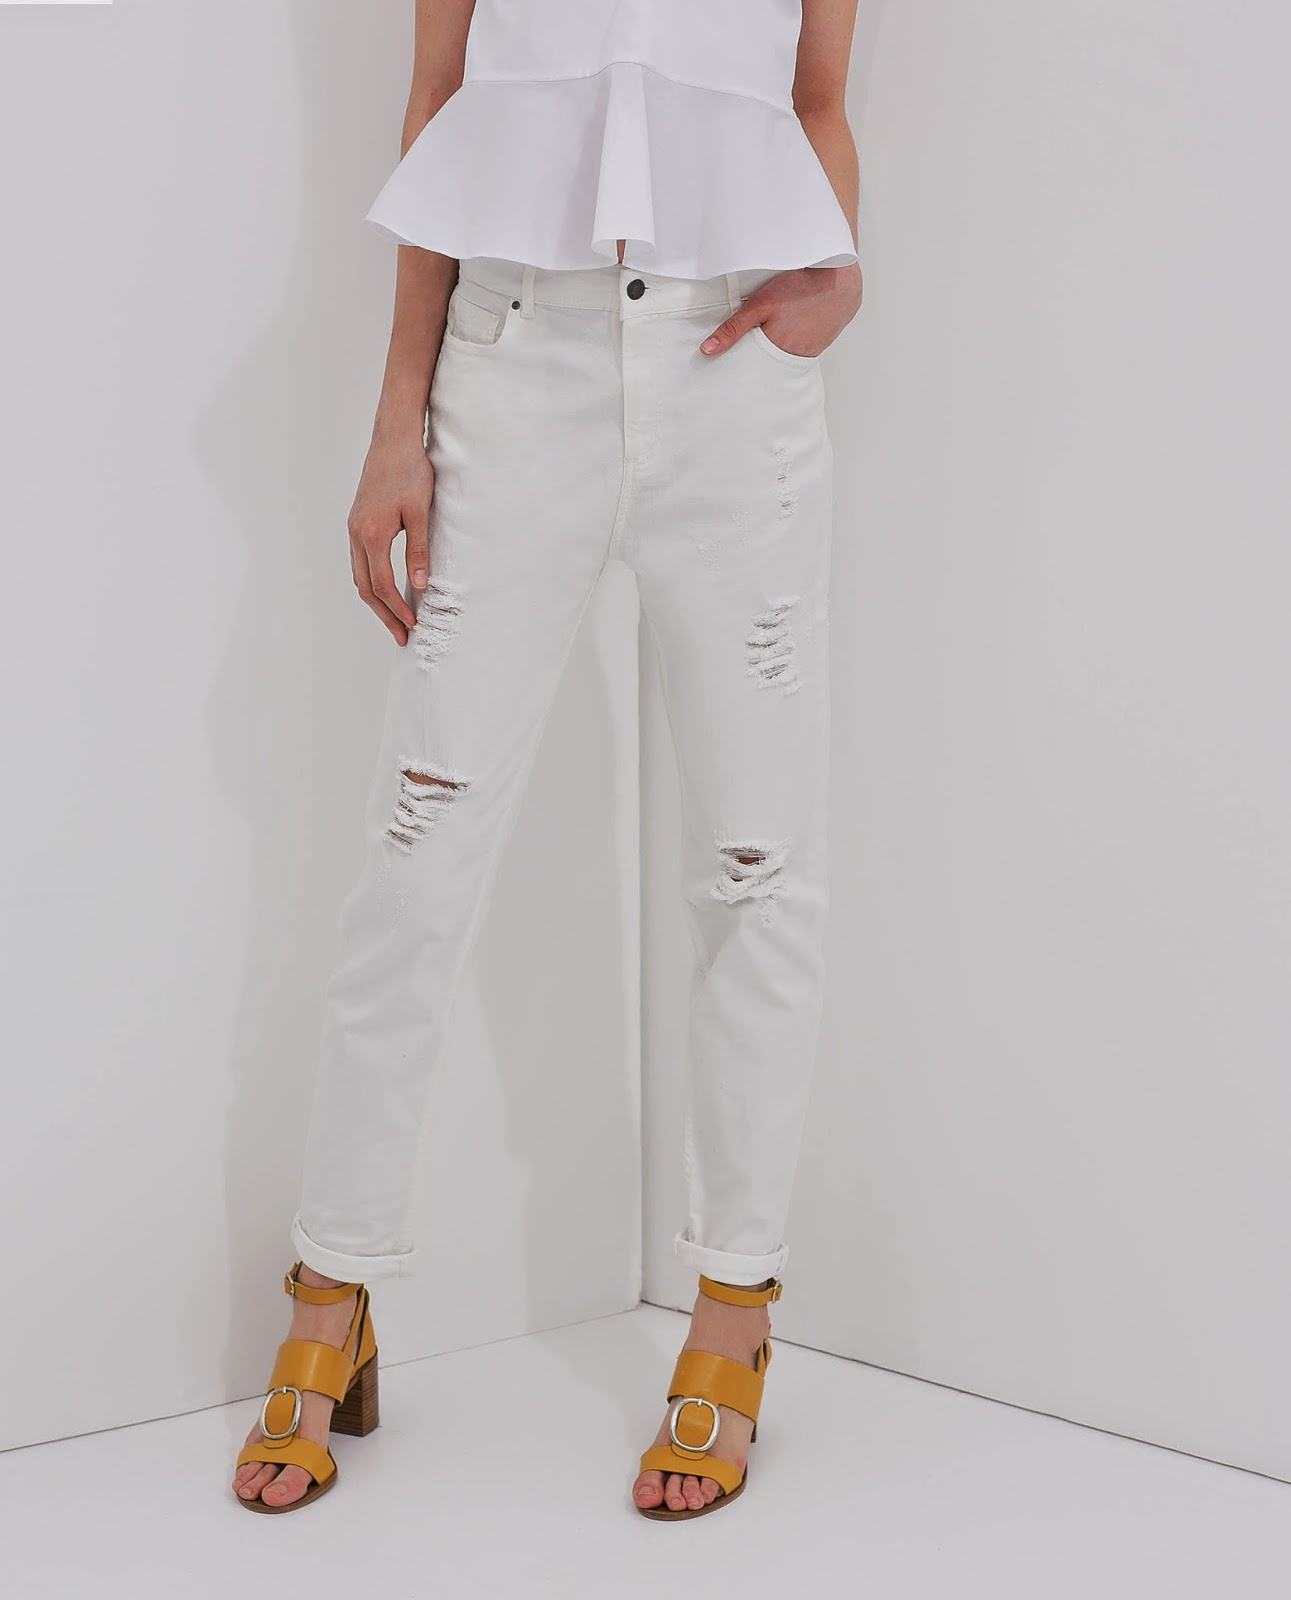 ripped white jeans, zara white jeans,